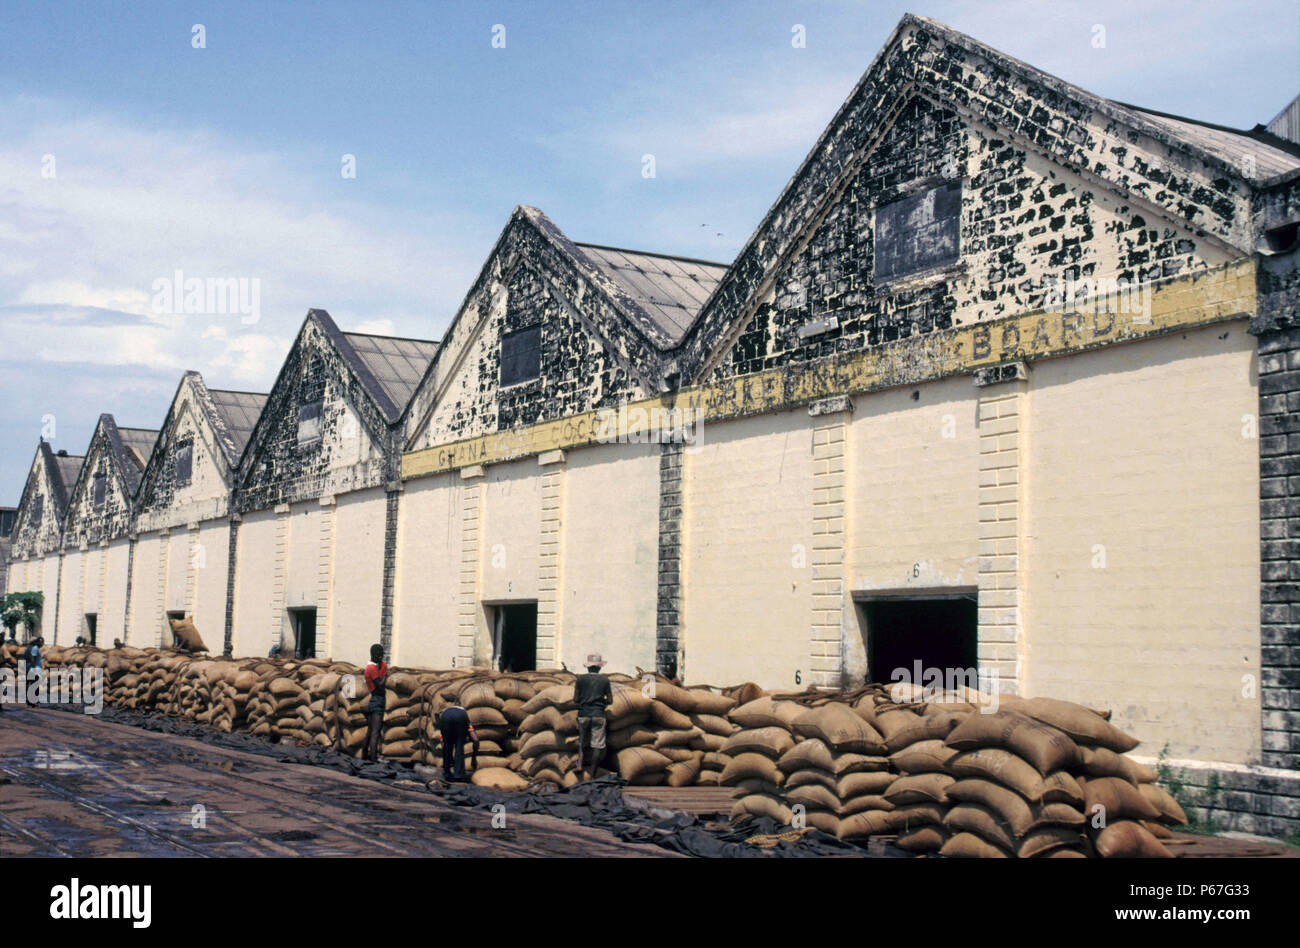 Ghana Cocoa Marketing Wharf at Takoradi on Thursday 6 June 1985. The sacks of beans which come in by rail are visible in the foreground. - Stock Image